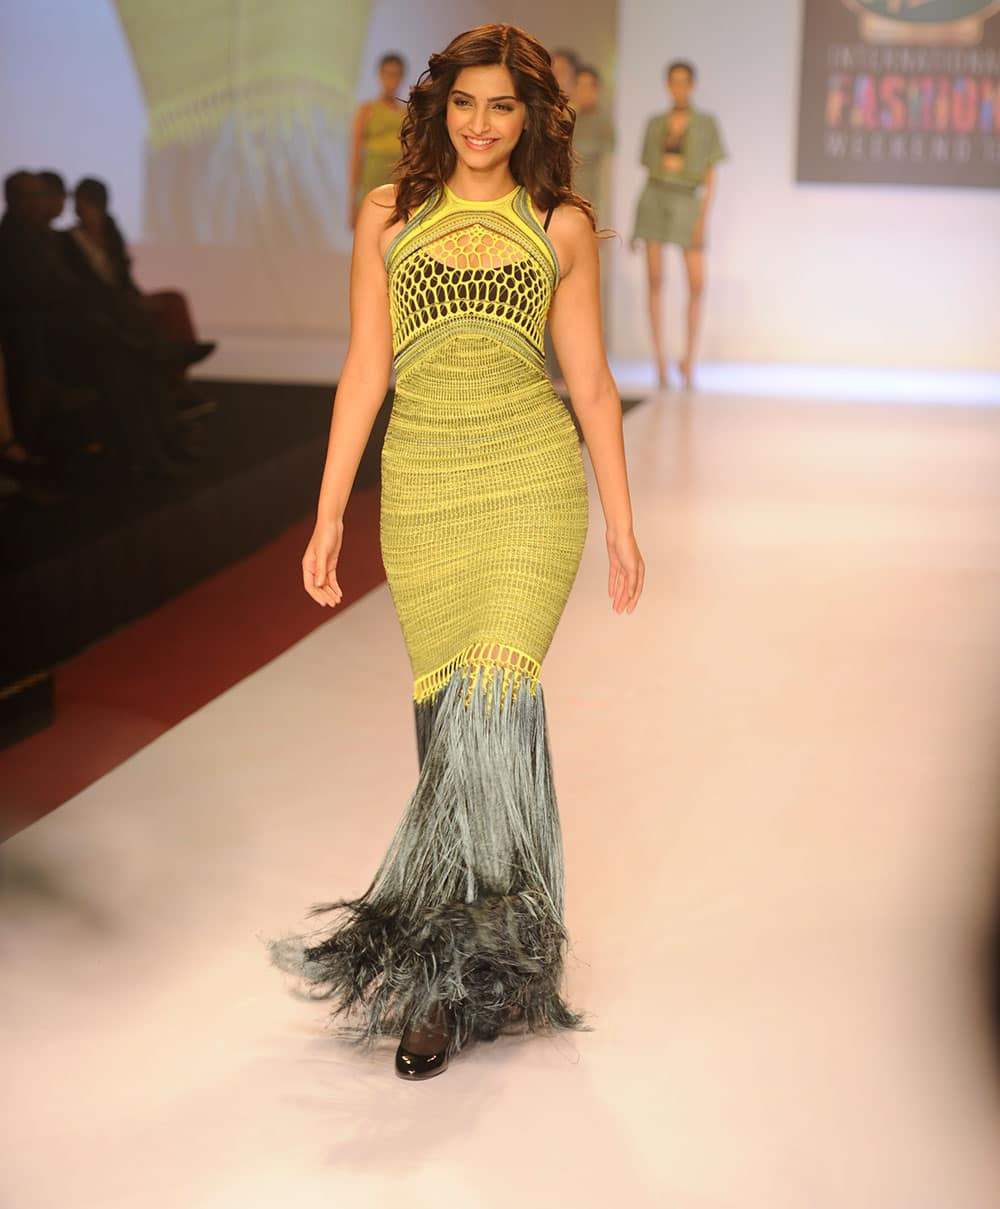 Bollywood actor Sonam Kapoor walks the ramp during the Signature International Fashion Weekend 2013 in Mumbai. Pic Courtesy: DNA